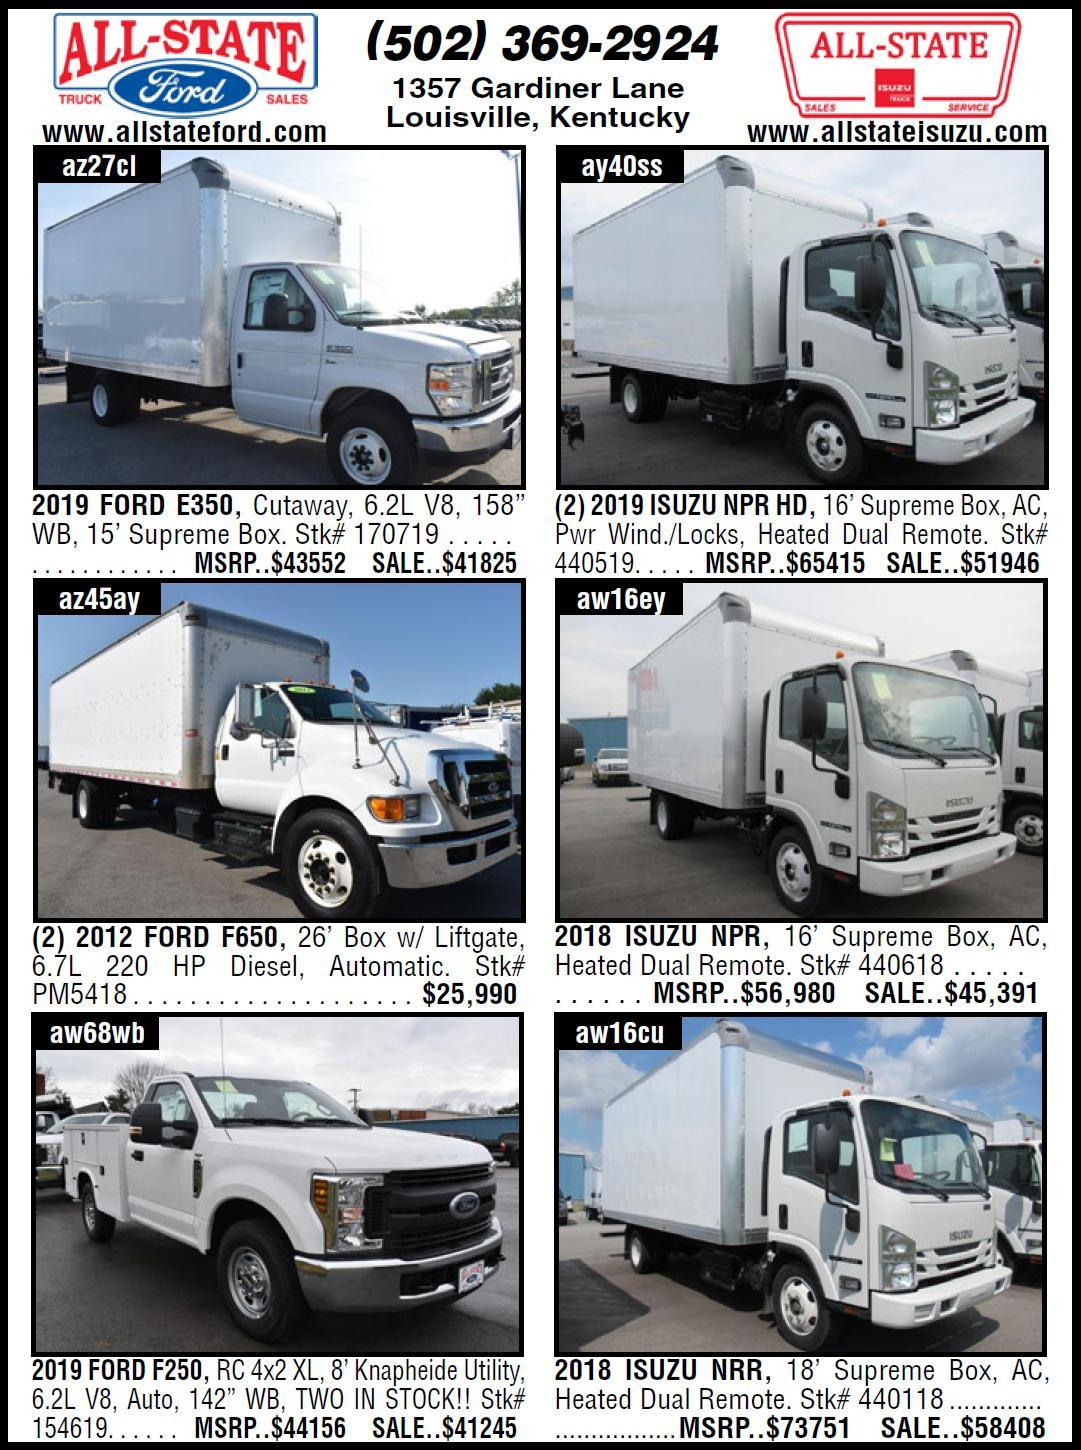 NEW TRUCKPAPER AD